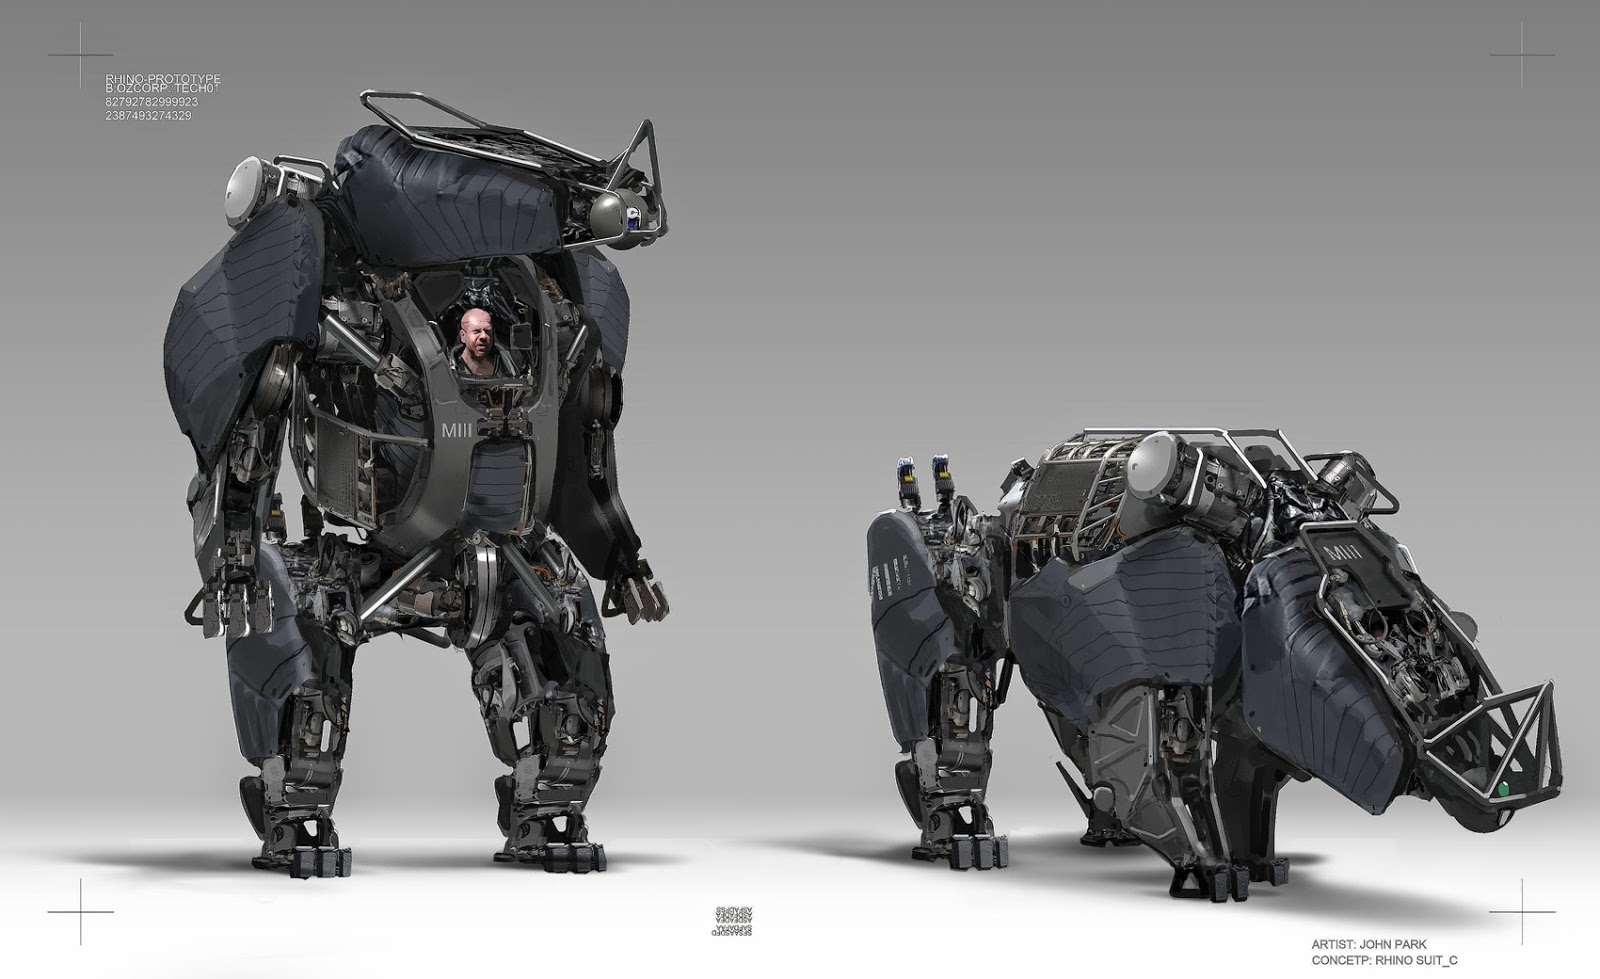 Spiderman movie rhino - photo#19